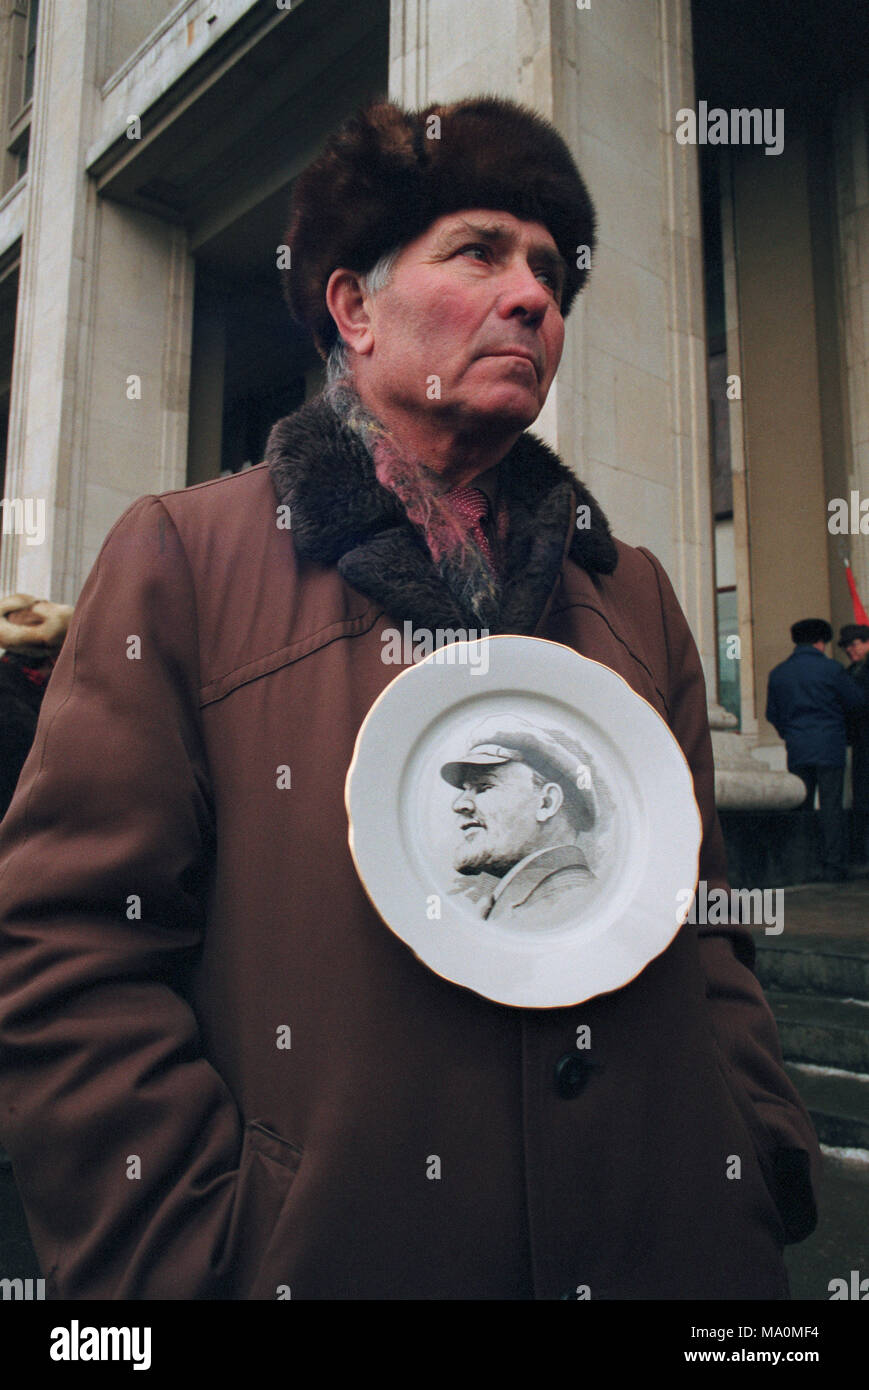 Moscow, Russia - February 09, 1992: Pro communist rally on Manezh square. Senior man holding plate with portrait of Lenin. - Stock Image